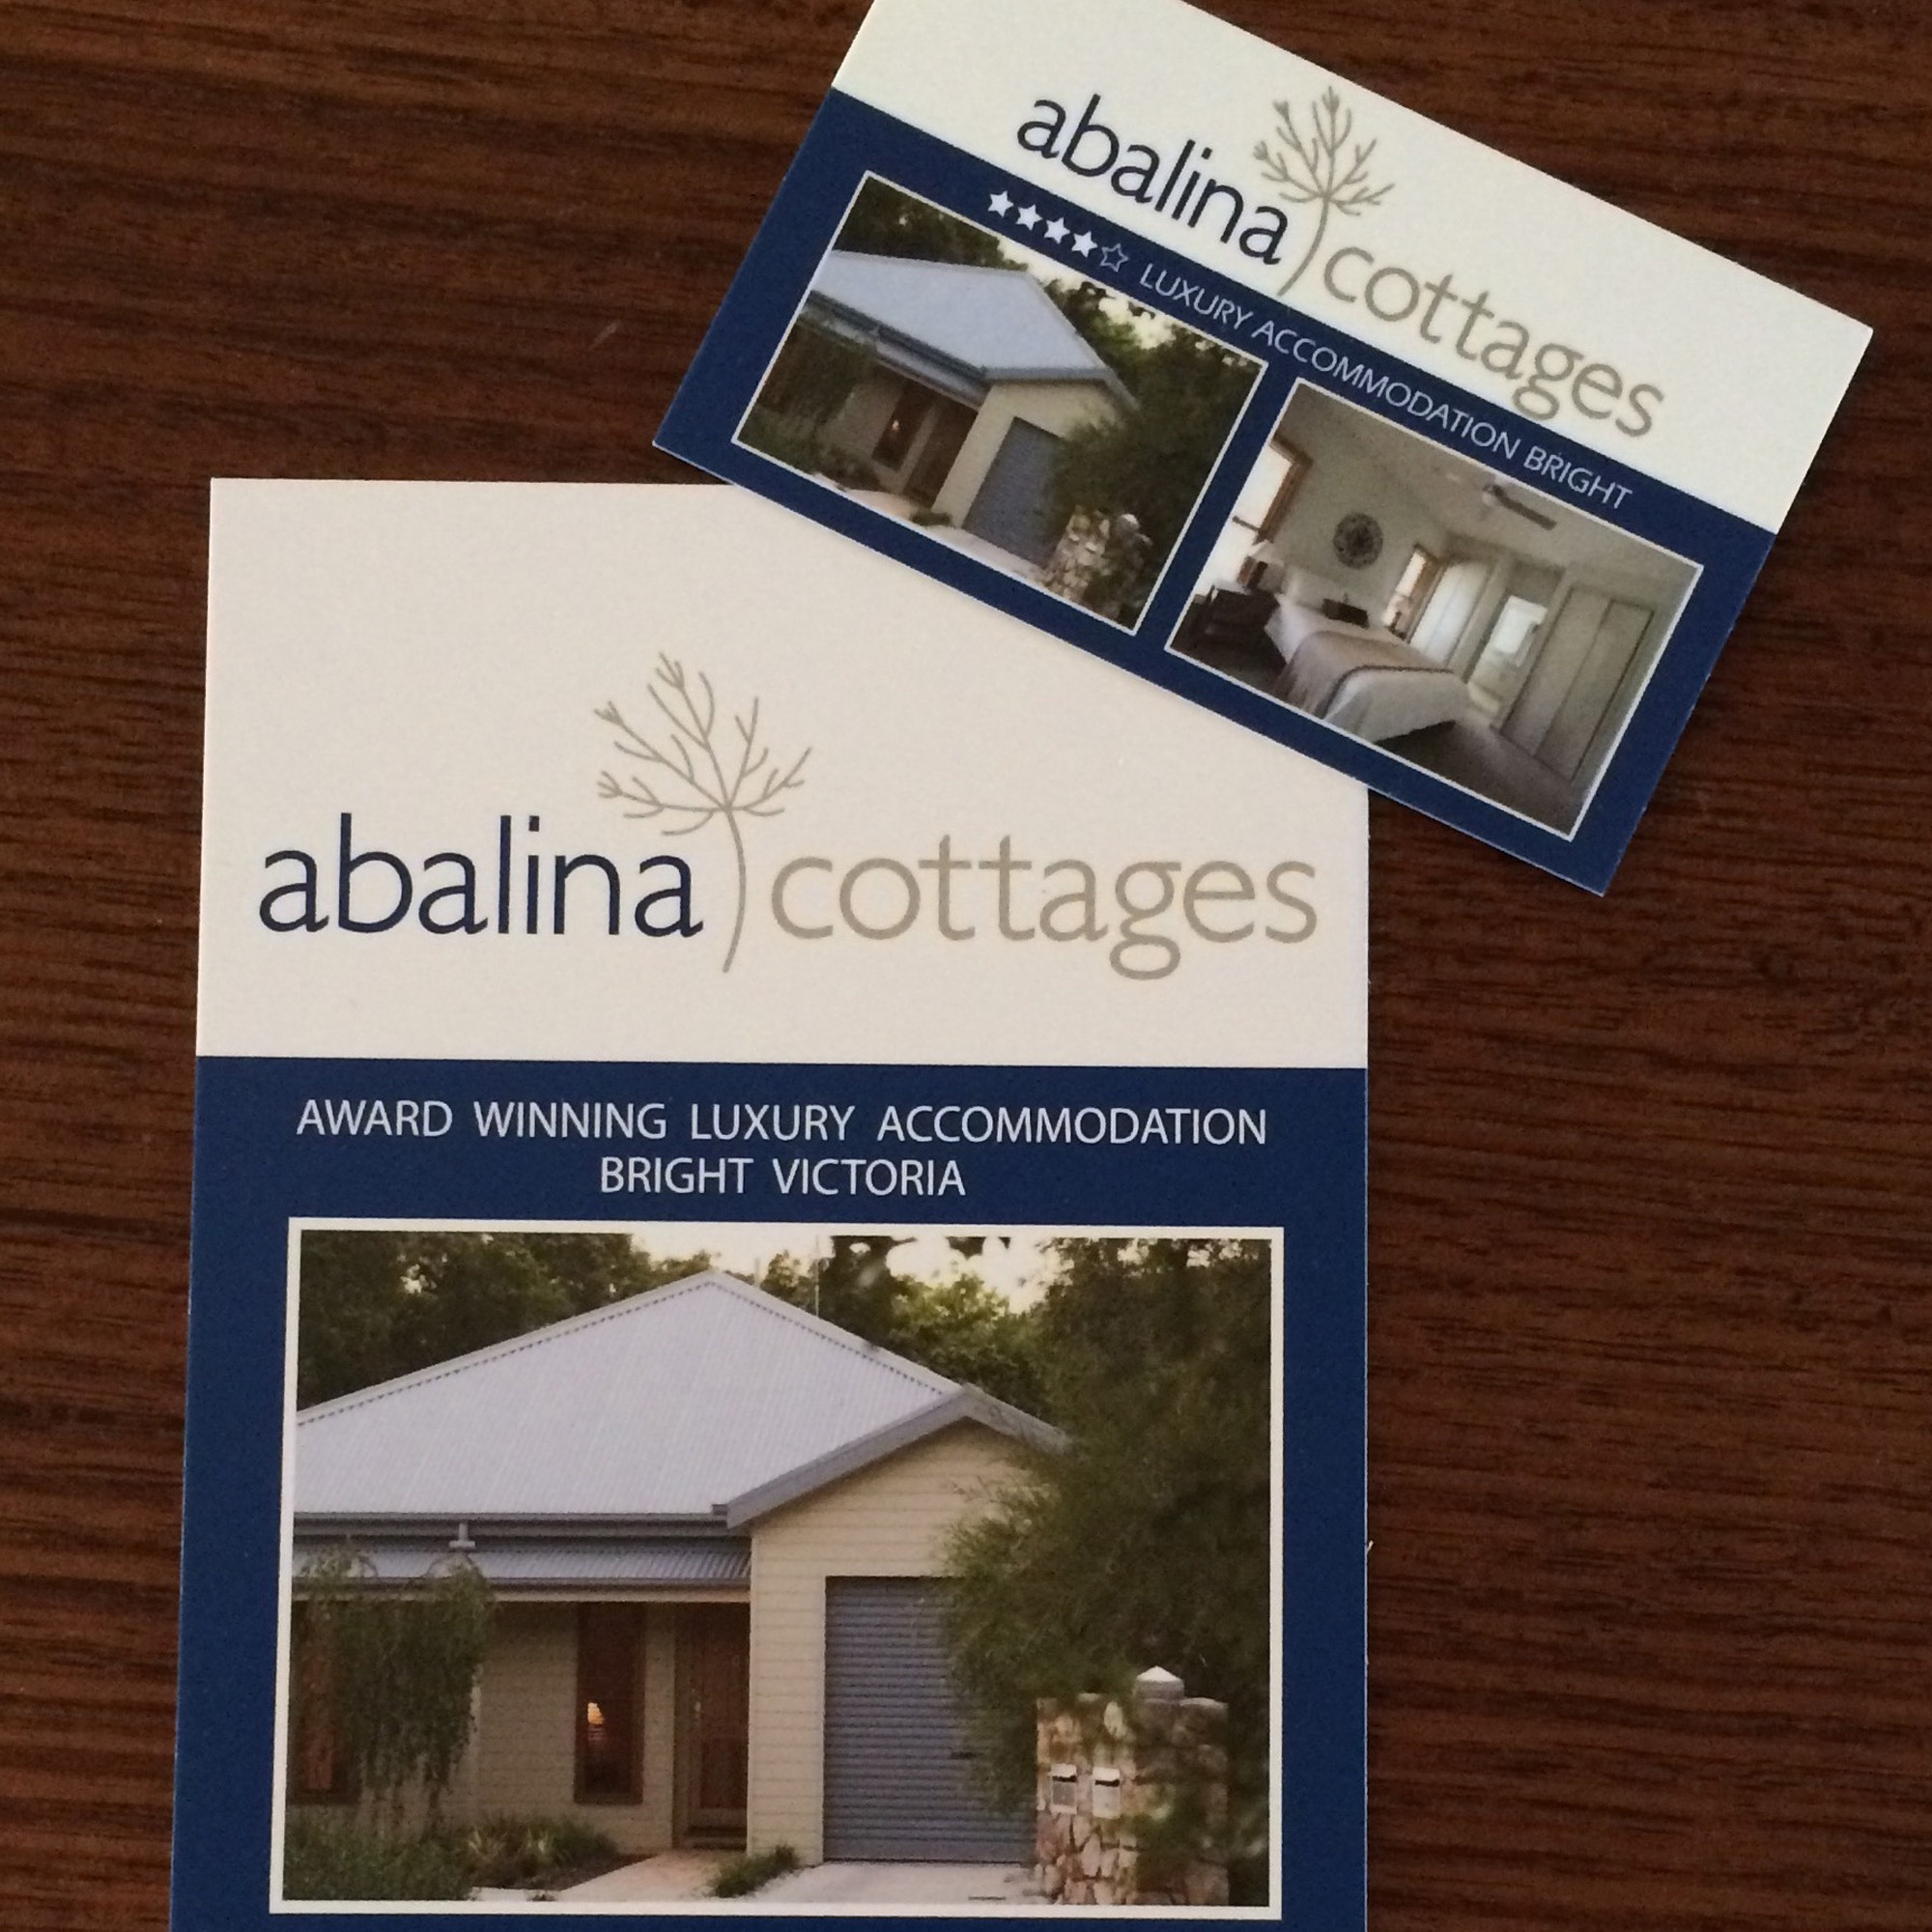 Abalina Cottages